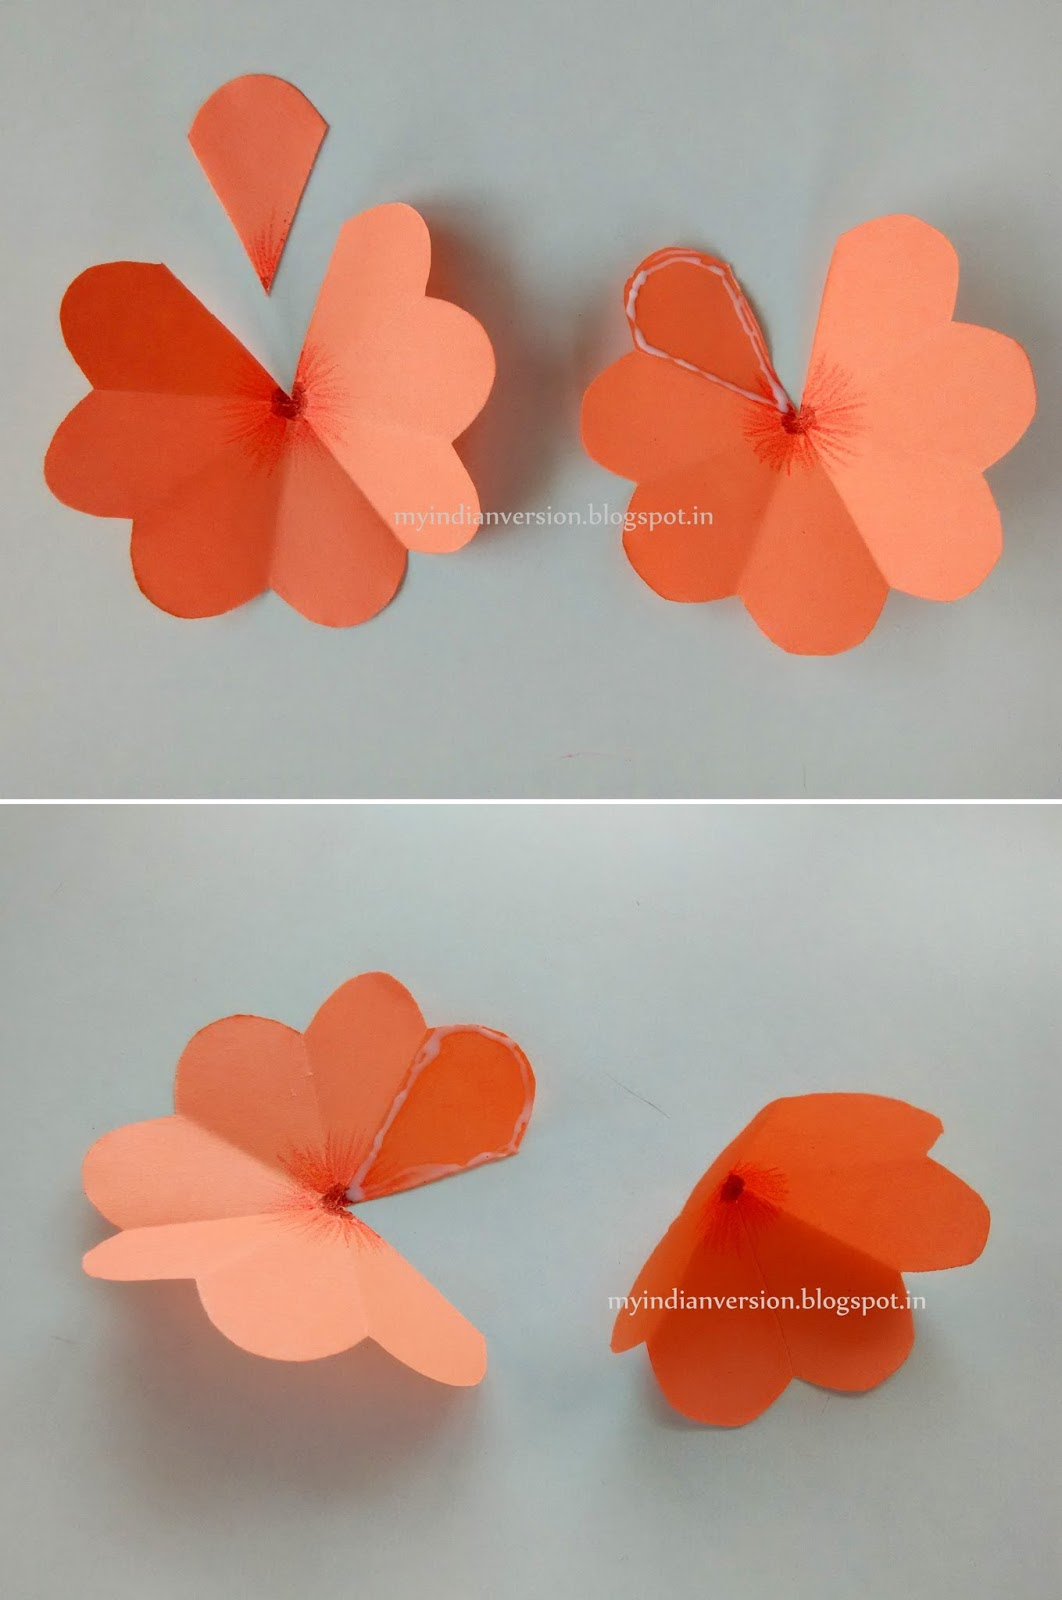 Easy Up Do On Stretched Natural Hair: My Indian Version: DIY Easy POP UP Card : Photo Tutorial